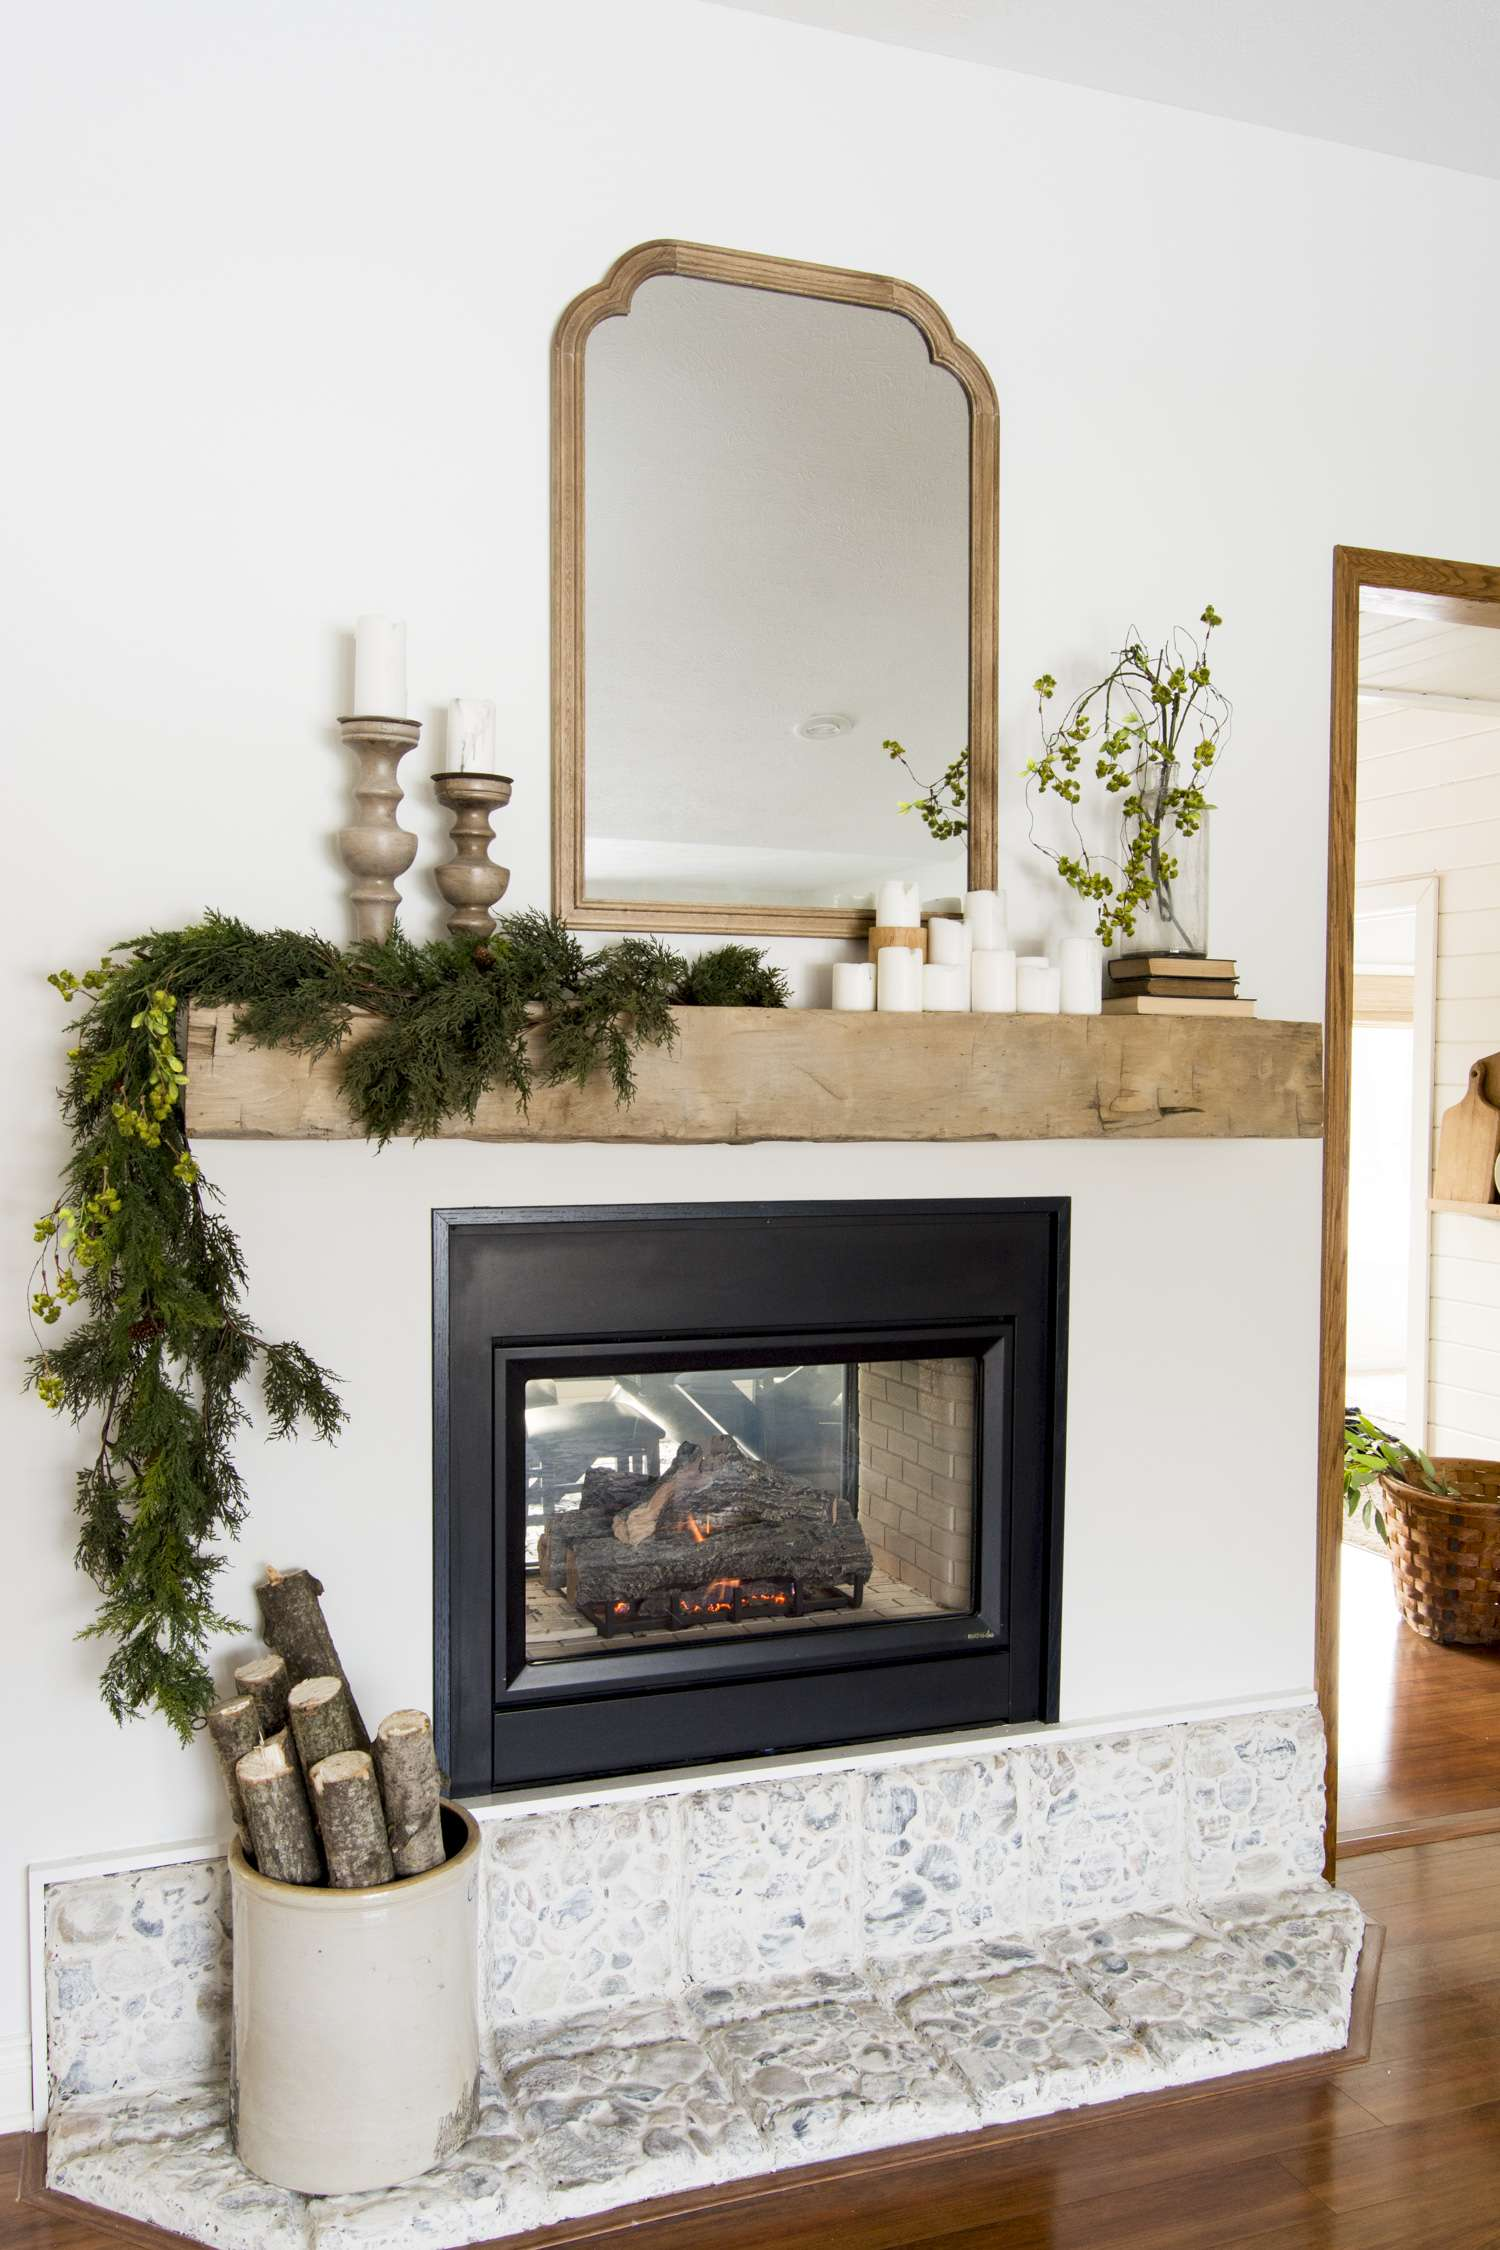 Cozy cottage style fireplace mantel decor.